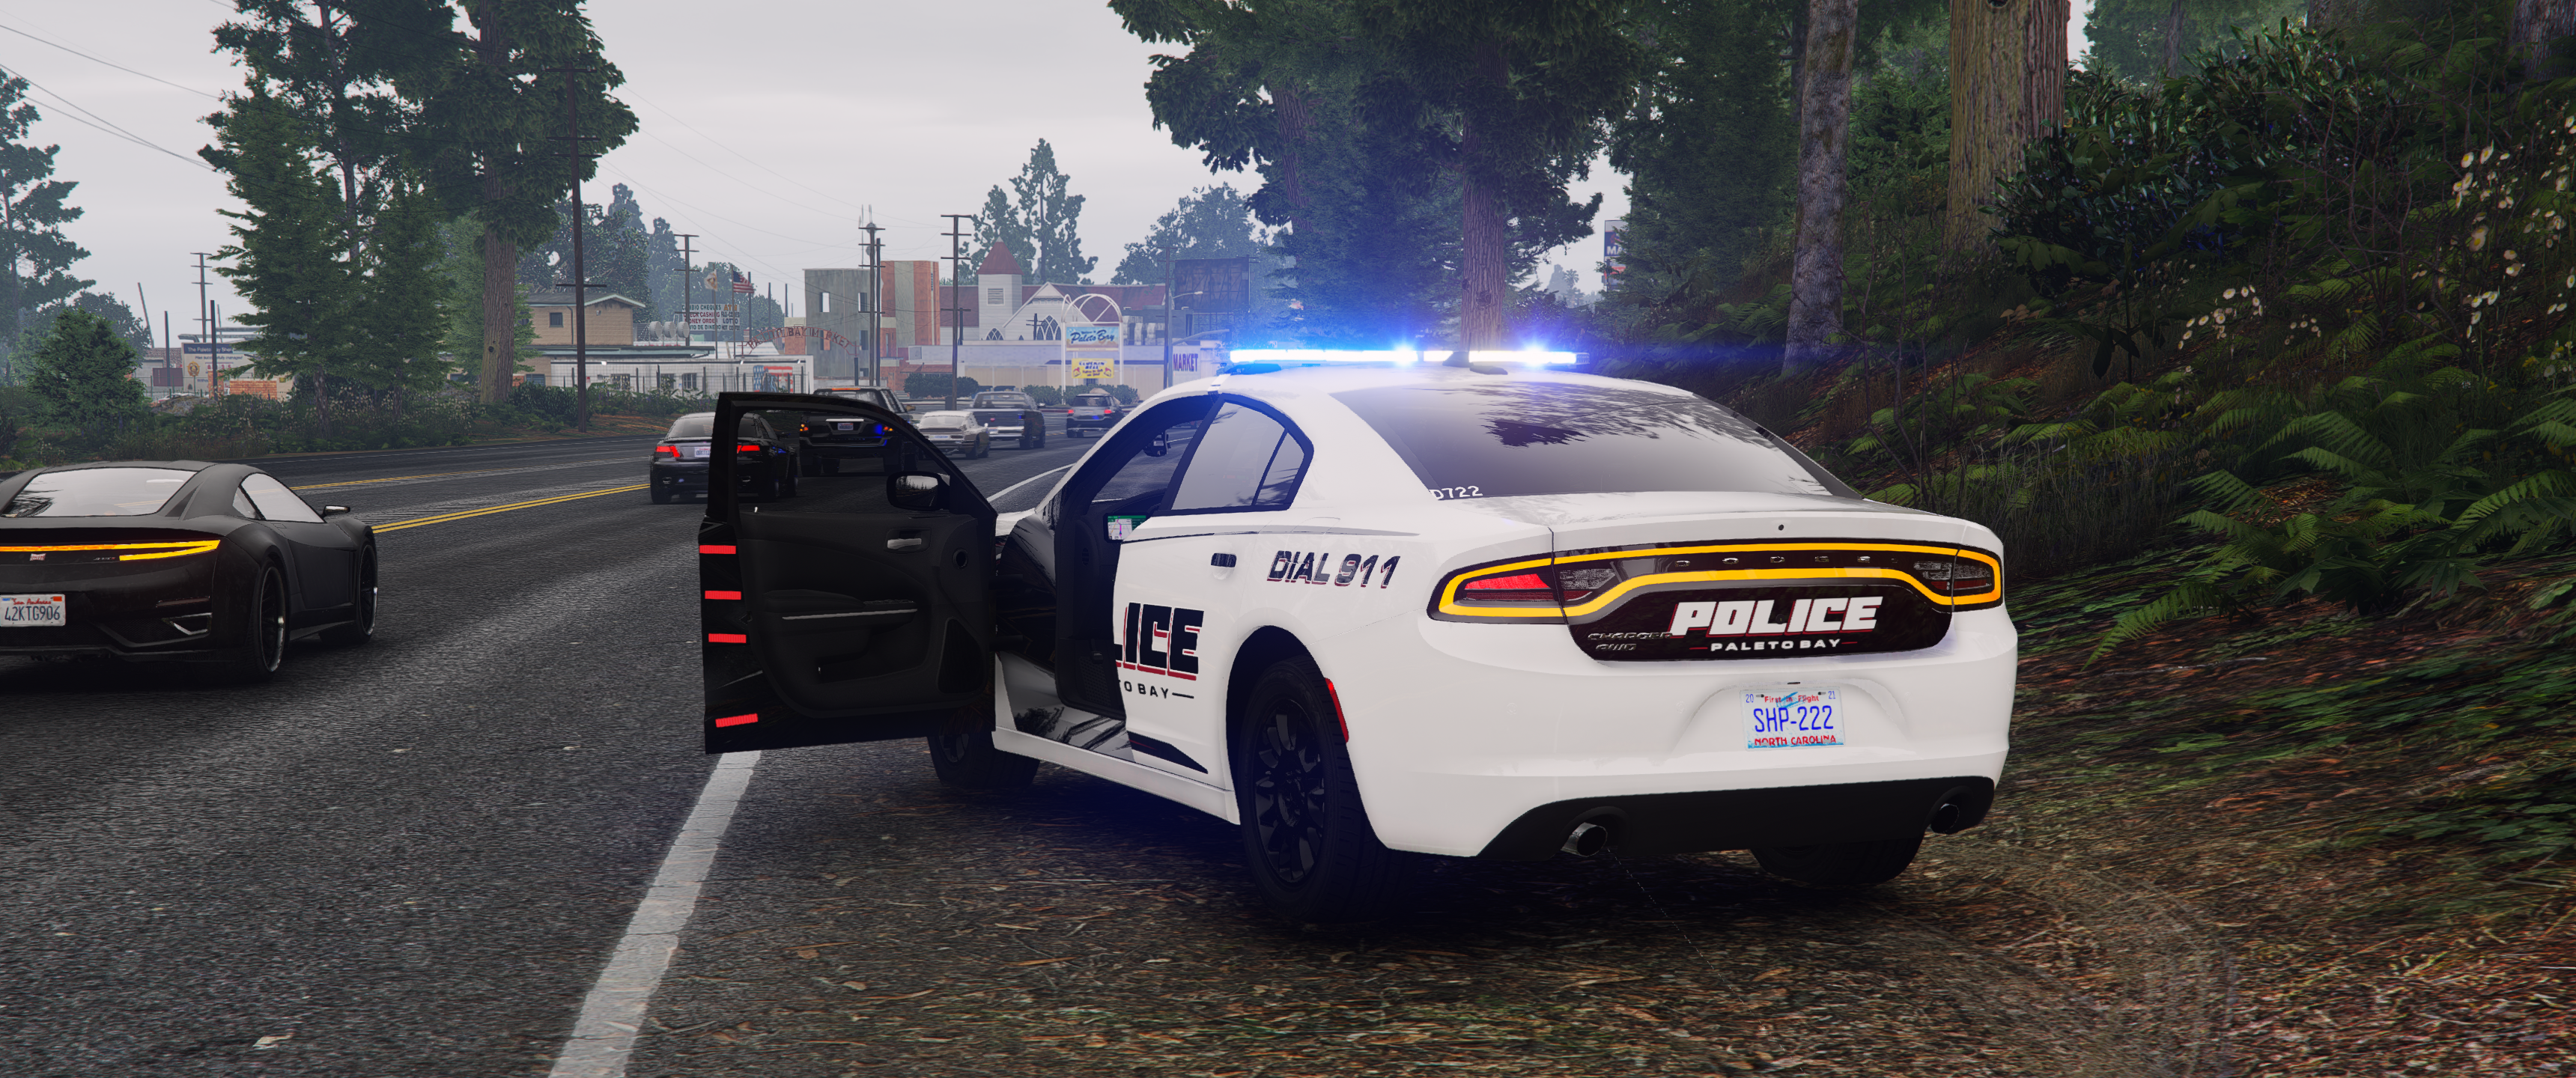 PBPD, Carrboro, NC Police based Traffic Stop